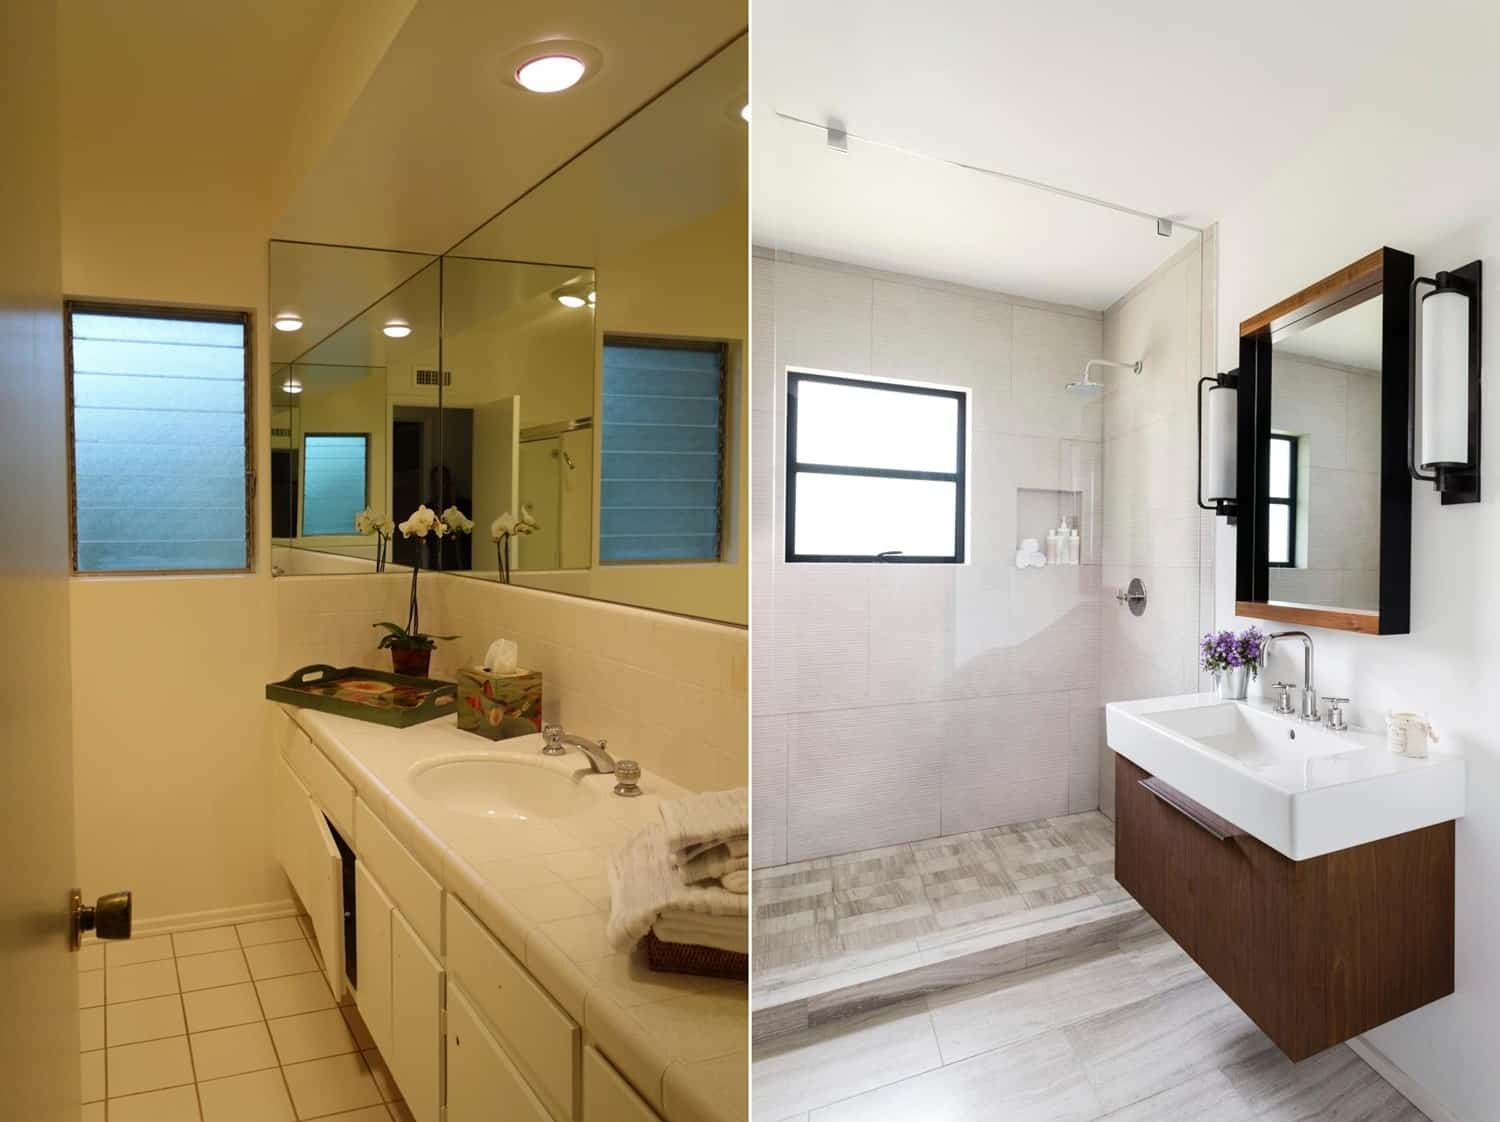 From Dark to Light and Airy